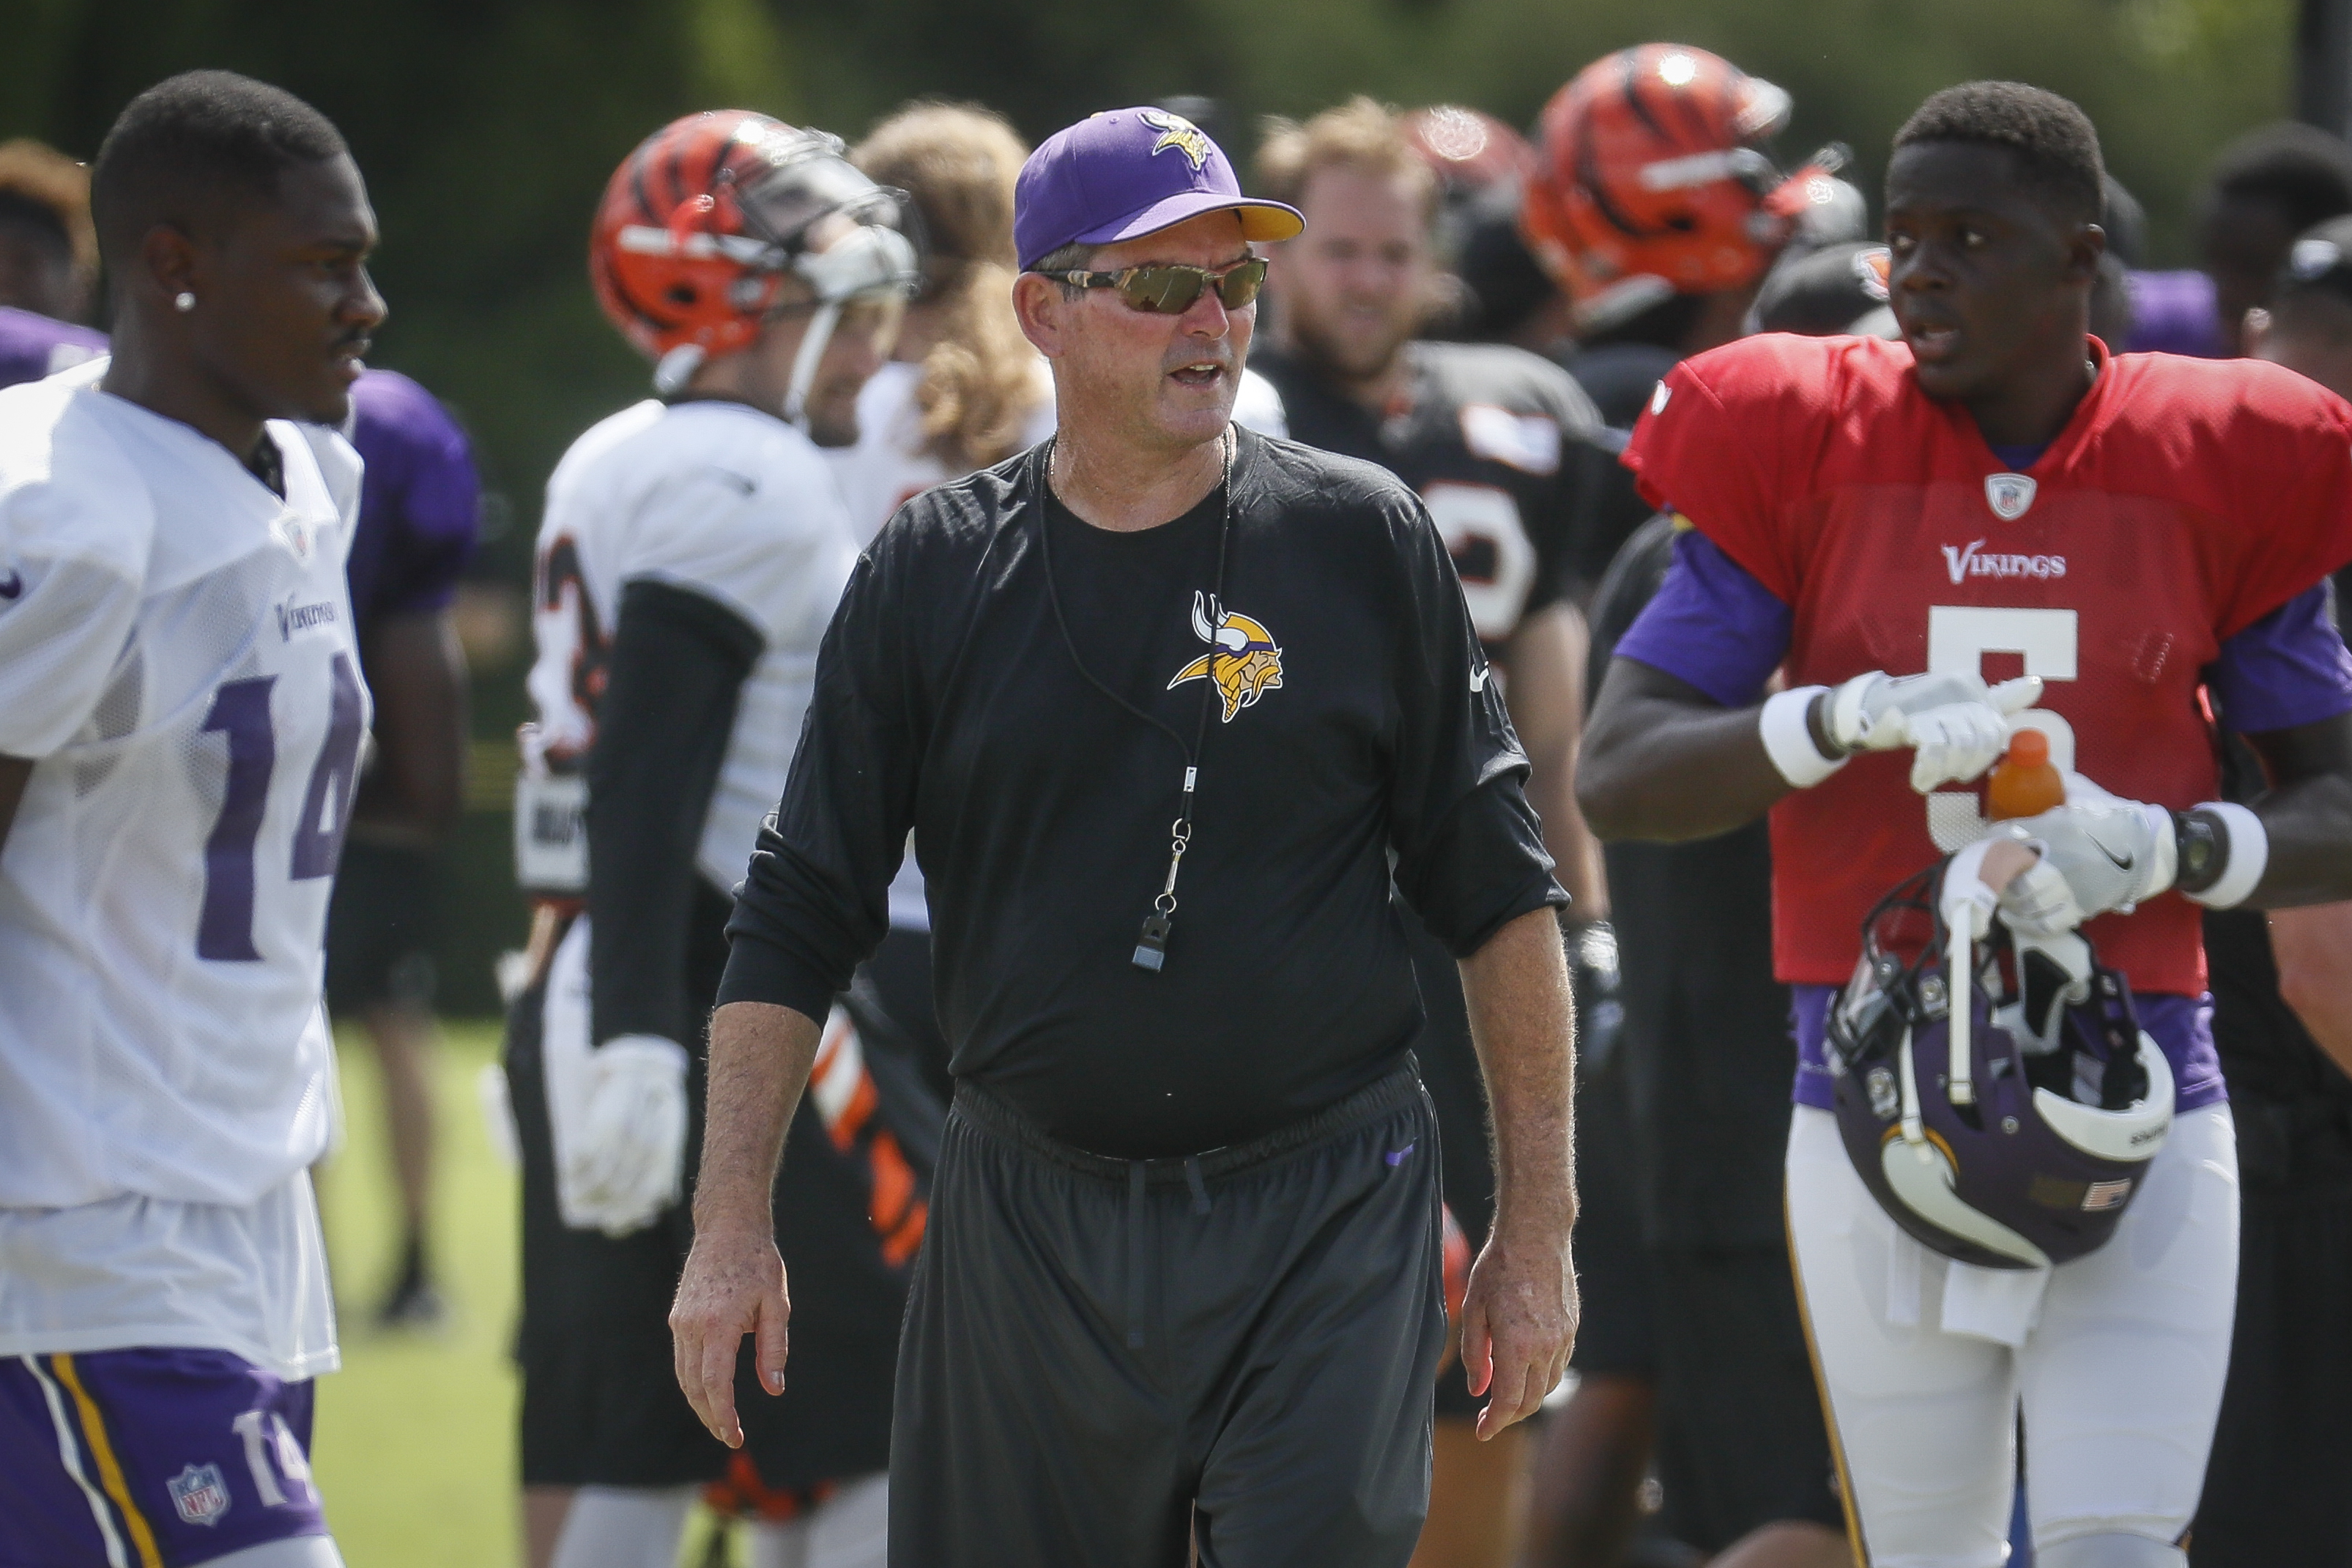 Minnesota Vikings head coach Mike Zimmer works the field during a joint NFL football practice with the Cincinnati Bengals, Thursday, Aug. 11, 2016, in Cincinnati. (AP Photo/John Minchillo)